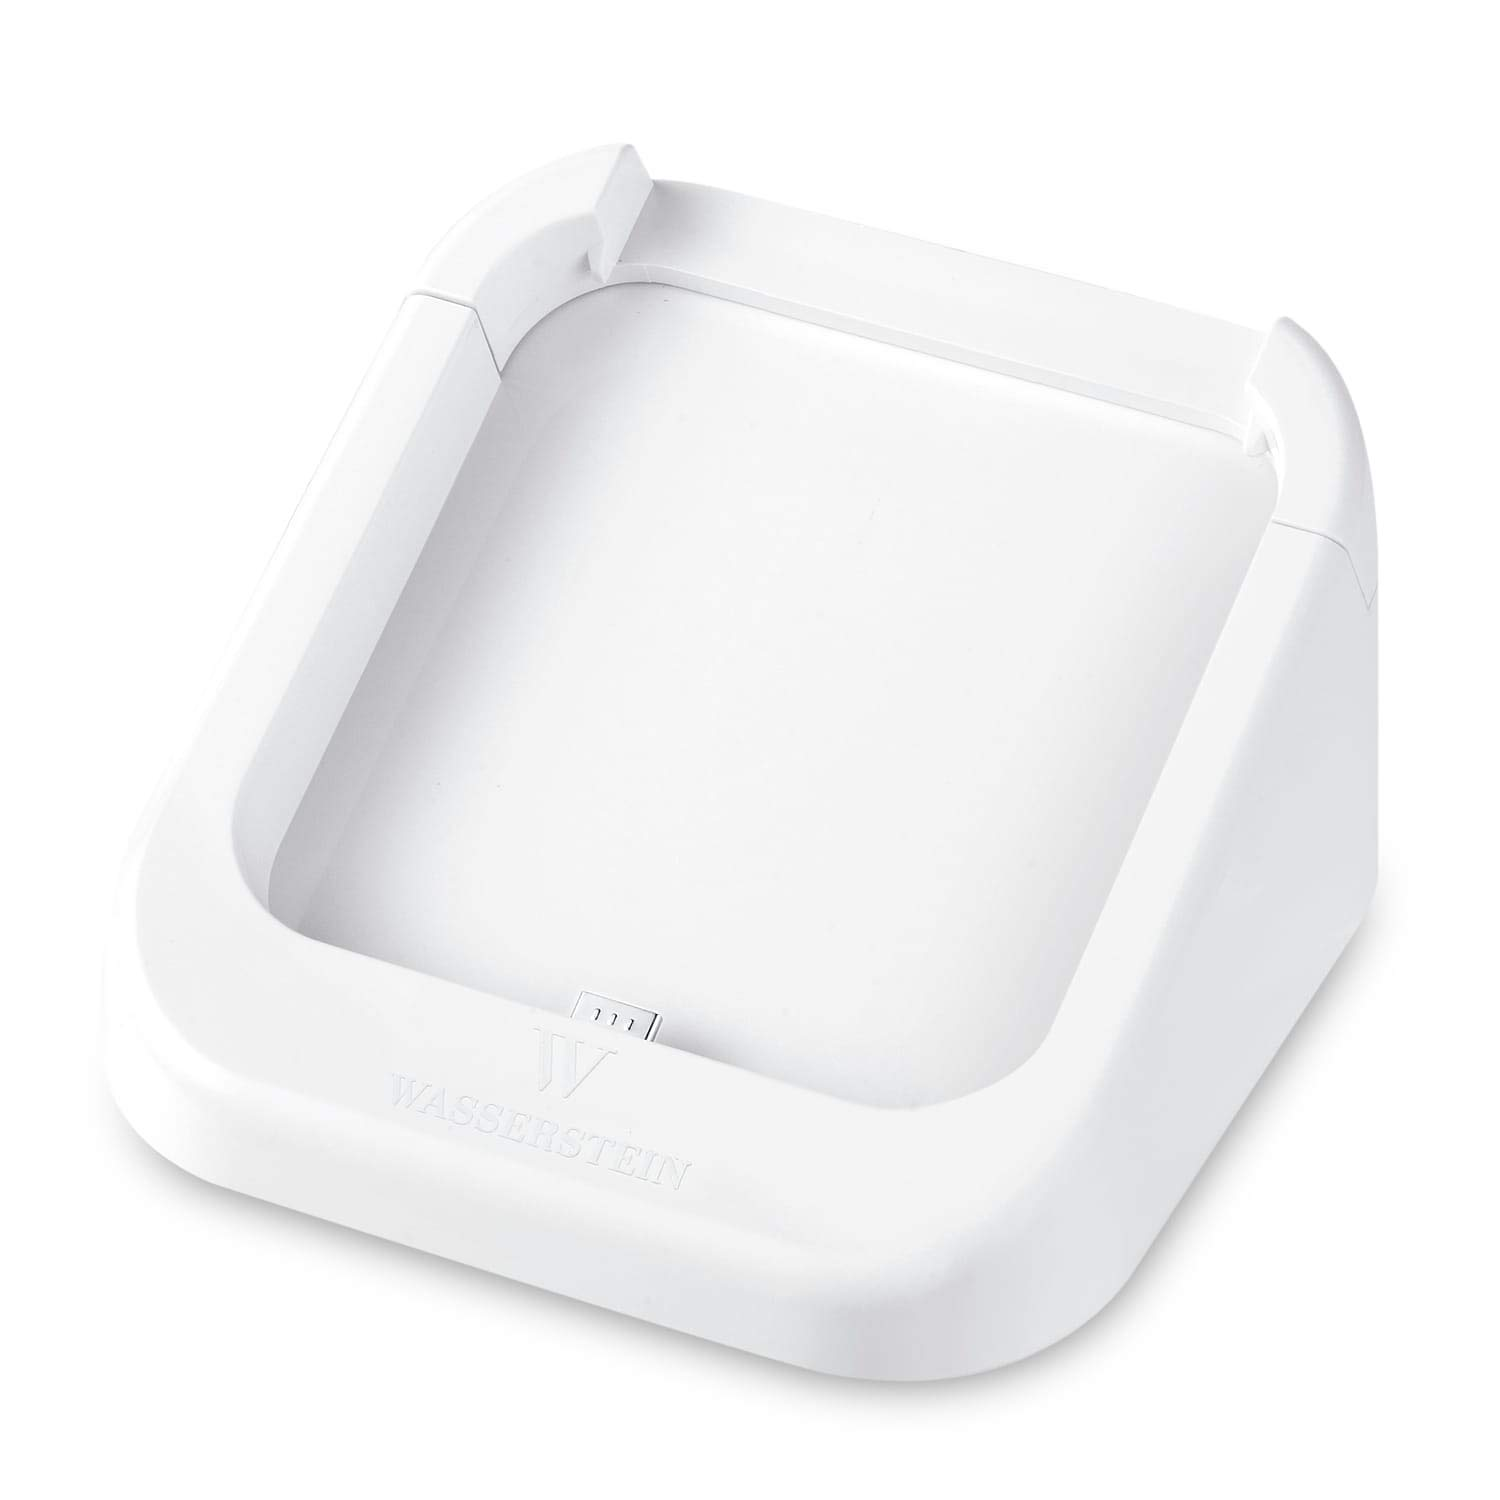 Square Card Reader Charging Station - Continuously Keep Your Square Card Reader Charged to Manage payments Effectively